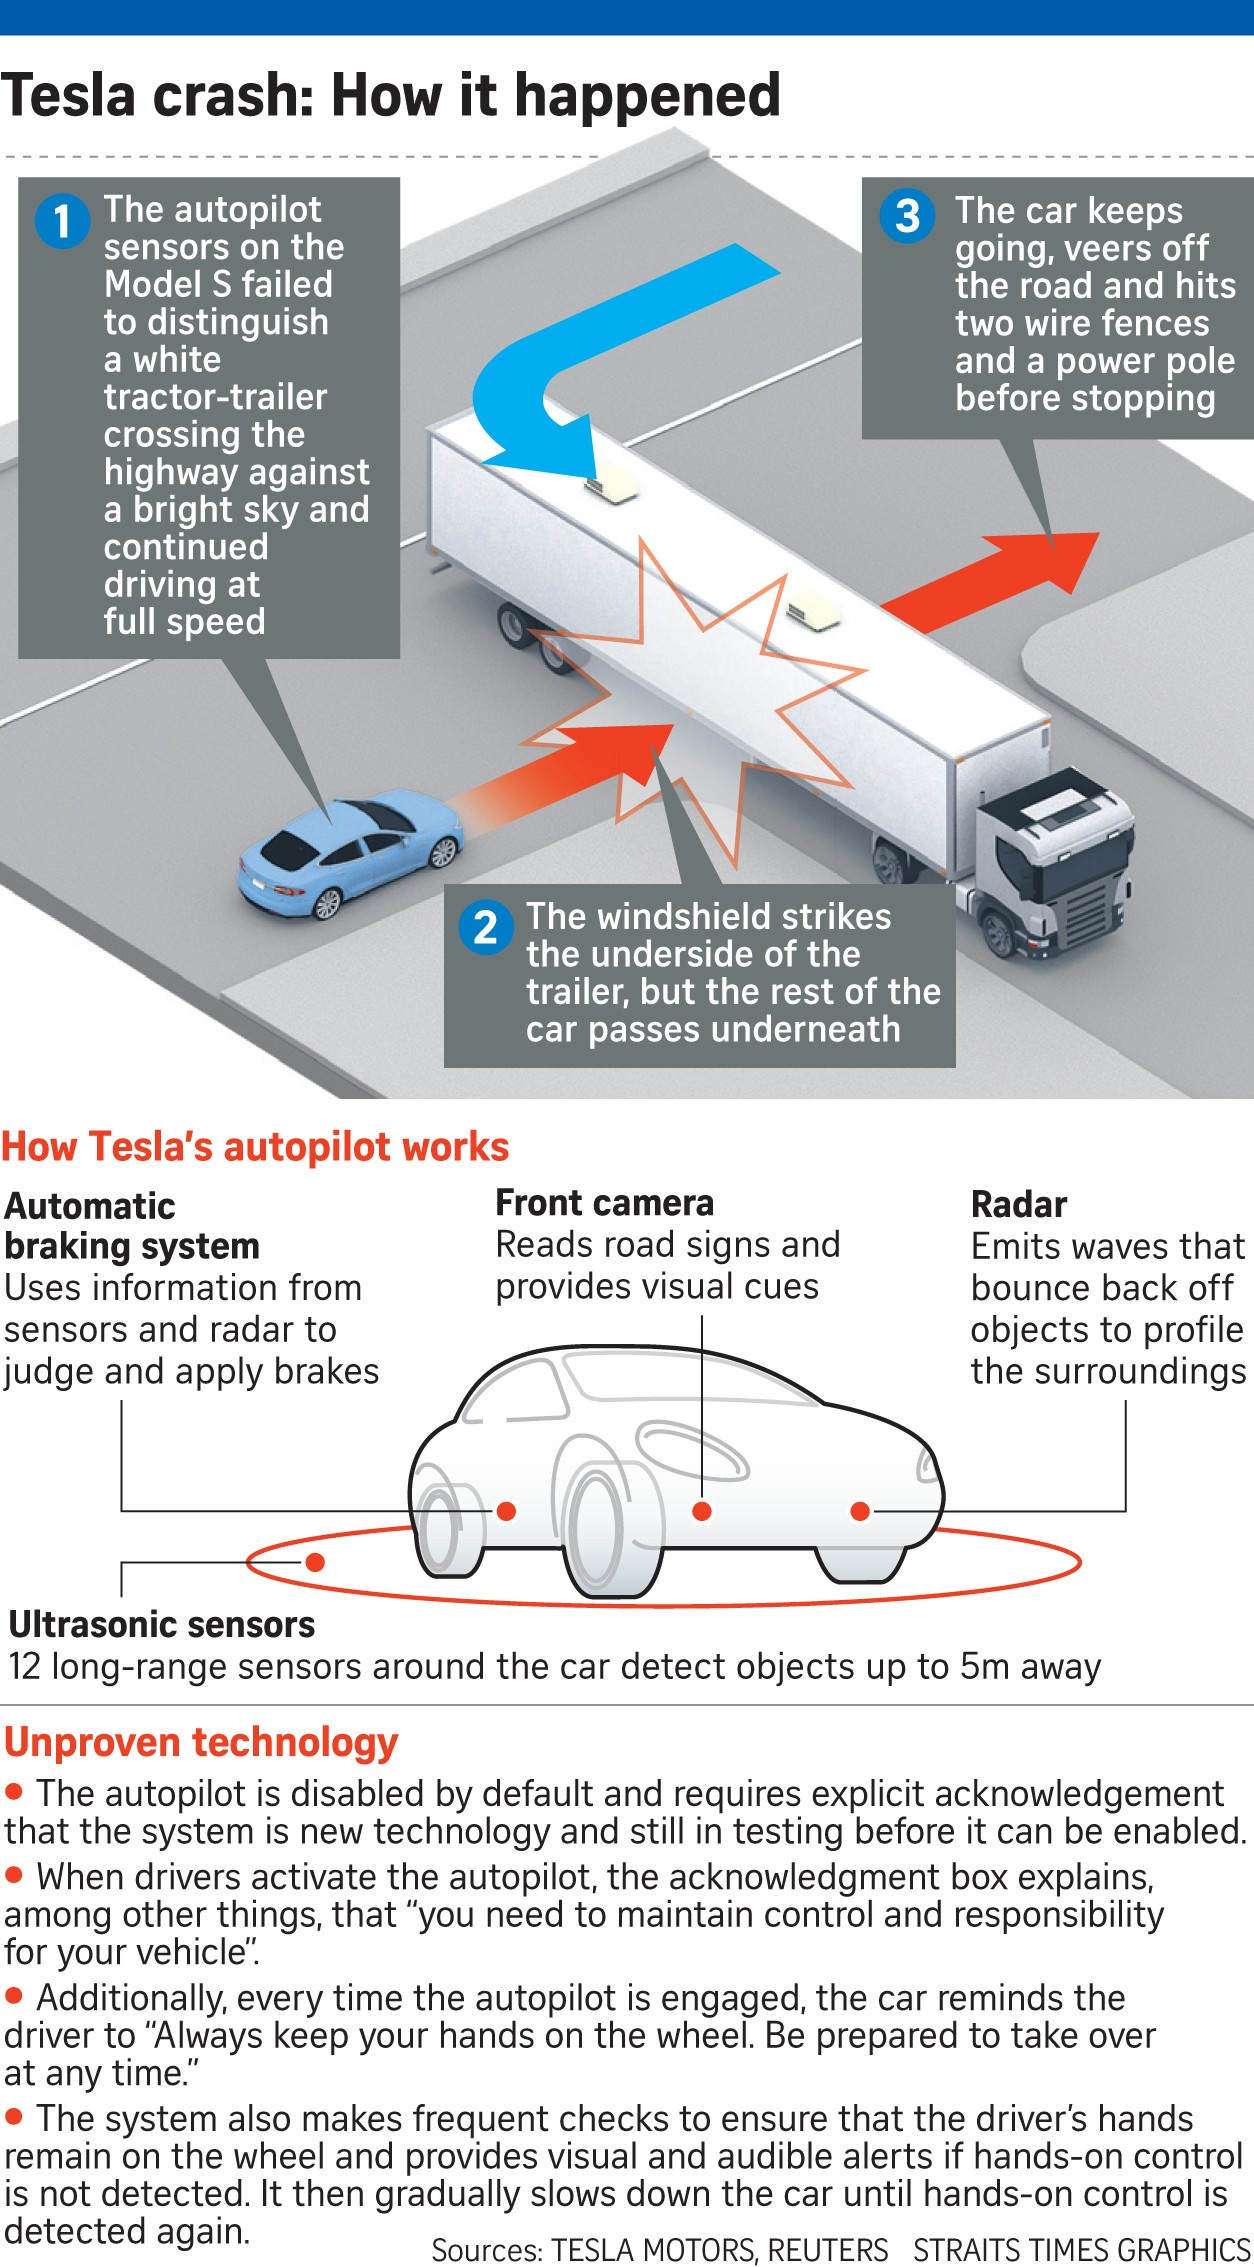 Car Underside Diagram Tesla Car On Autopilot Crashes Killing Driver United States News Of Car Underside Diagram